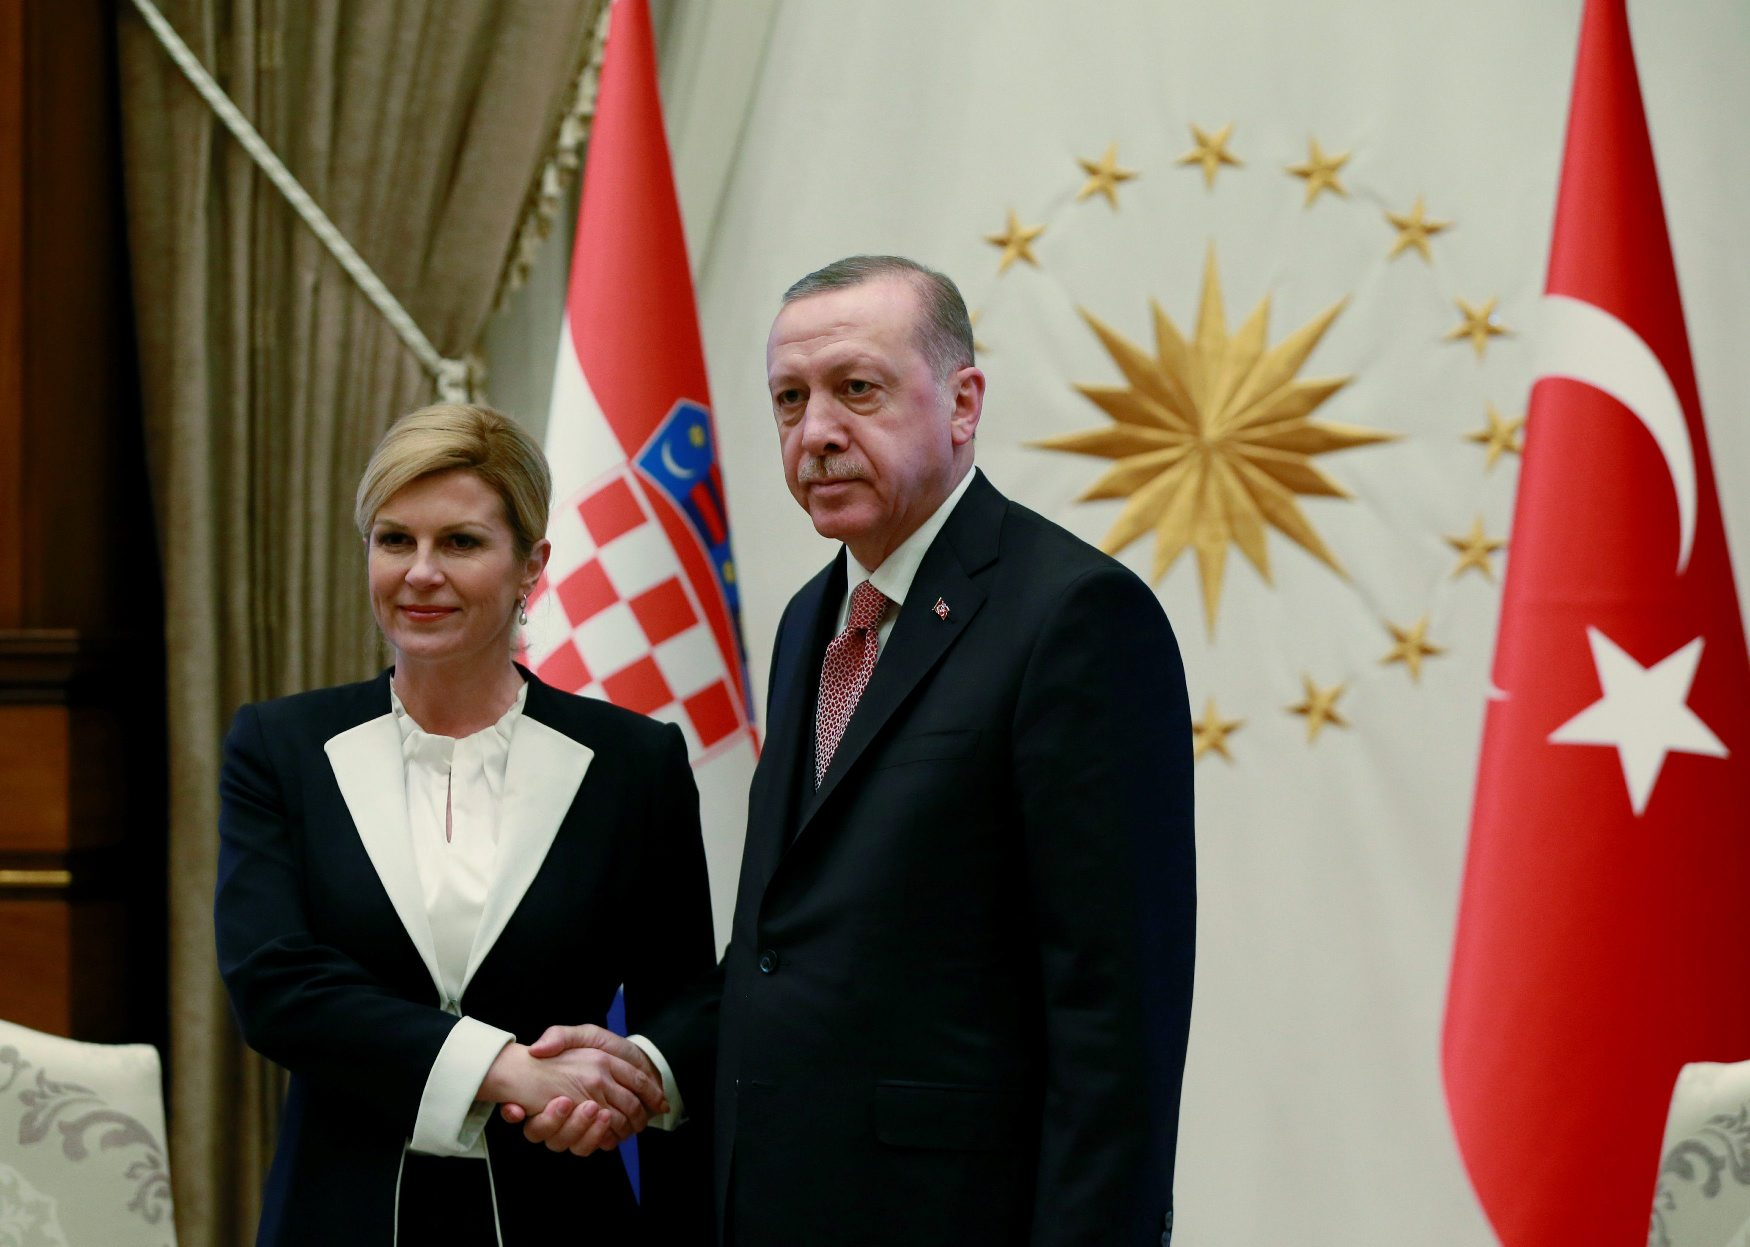 Turkish President Tayyip Erdogan meets with Croatian President Kolinda Grabar-Kitarovic in Ankara, Turkey January 16, 2019. Murat Cetinmuhurdar/Presidential Press Office/Handout via REUTERS ATTENTION EDITORS - THIS PICTURE WAS PROVIDED BY A THIRD PARTY. NO RESALES. NO ARCHIVE.